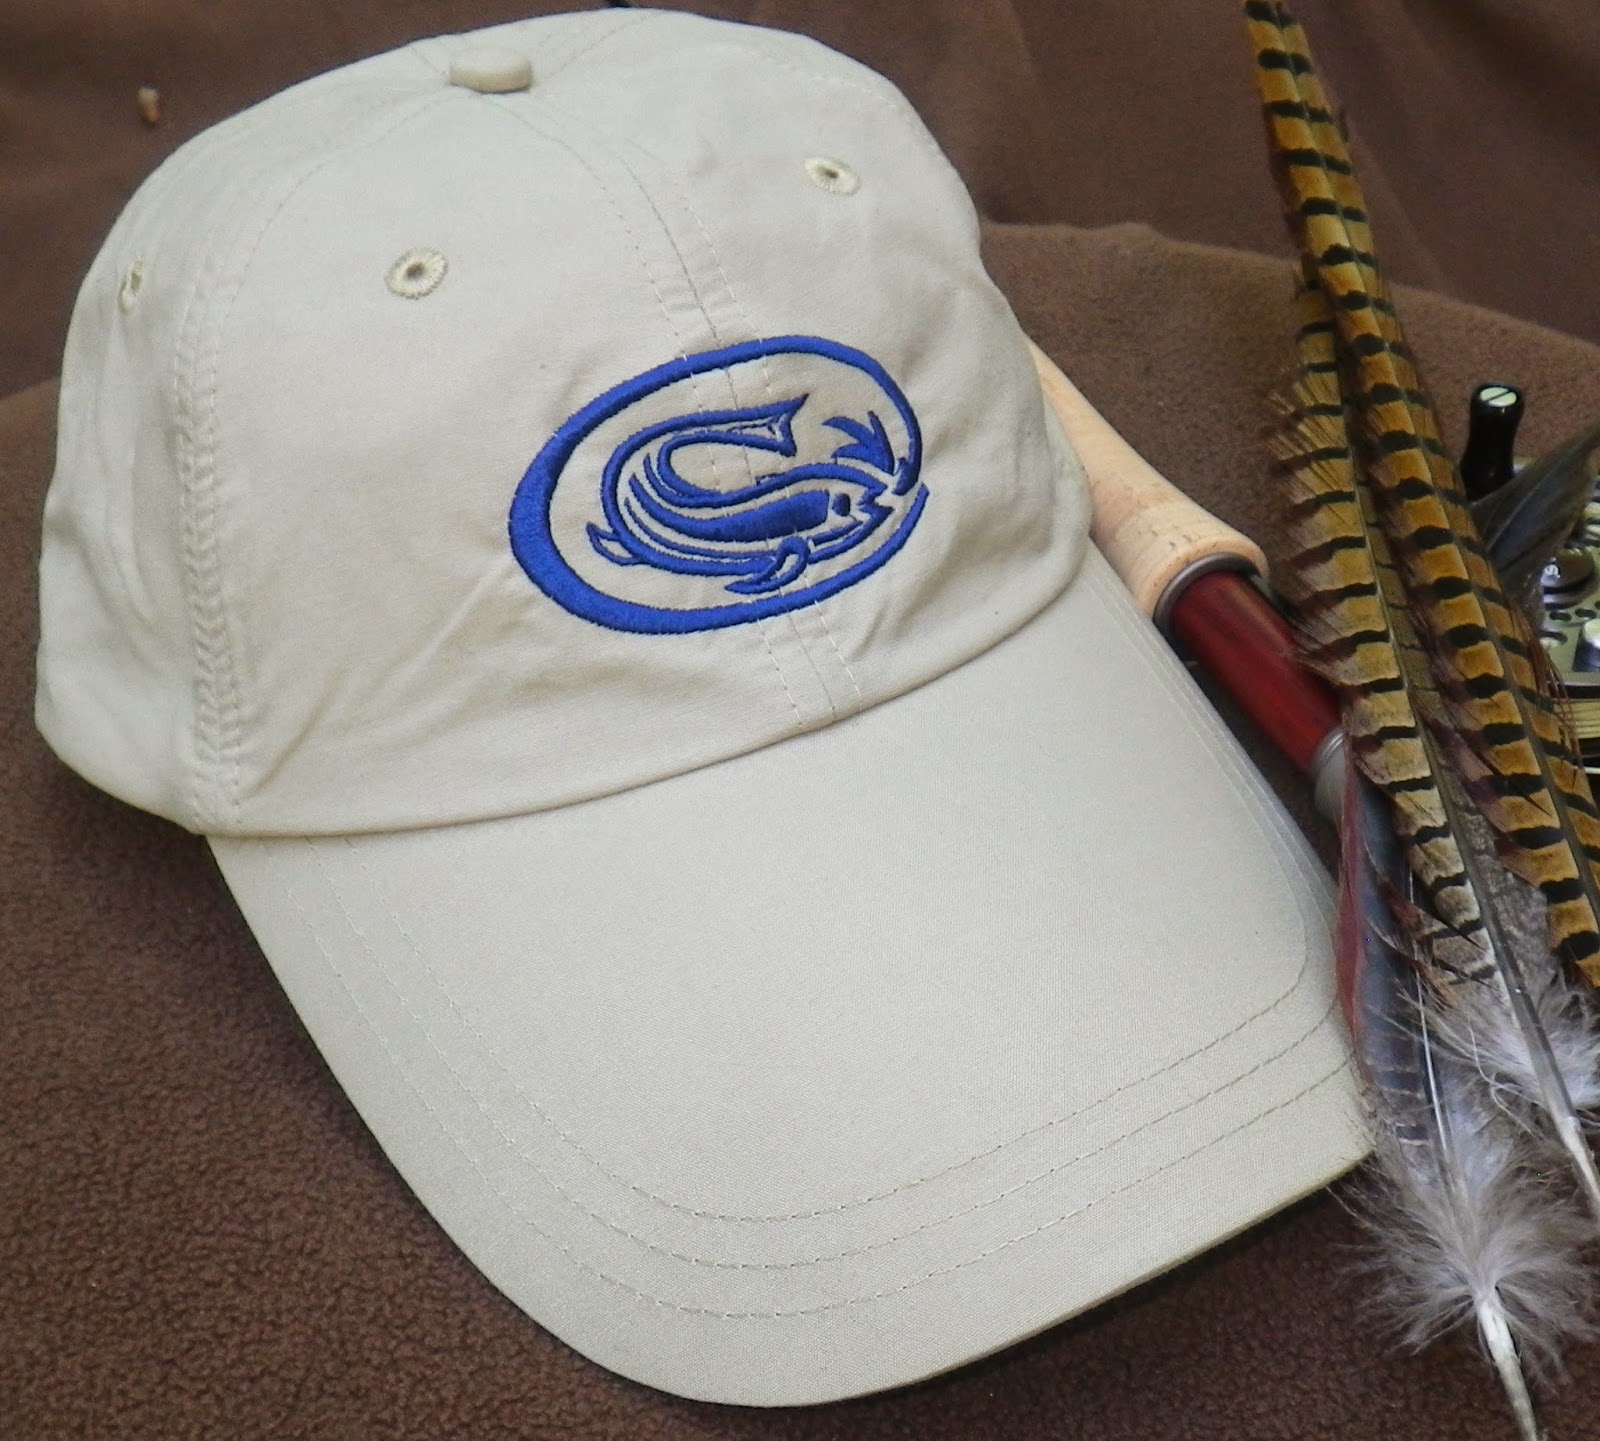 First cast fly fishing fishing hat 39 s for sale new fcff logo for Fishing hats for sale